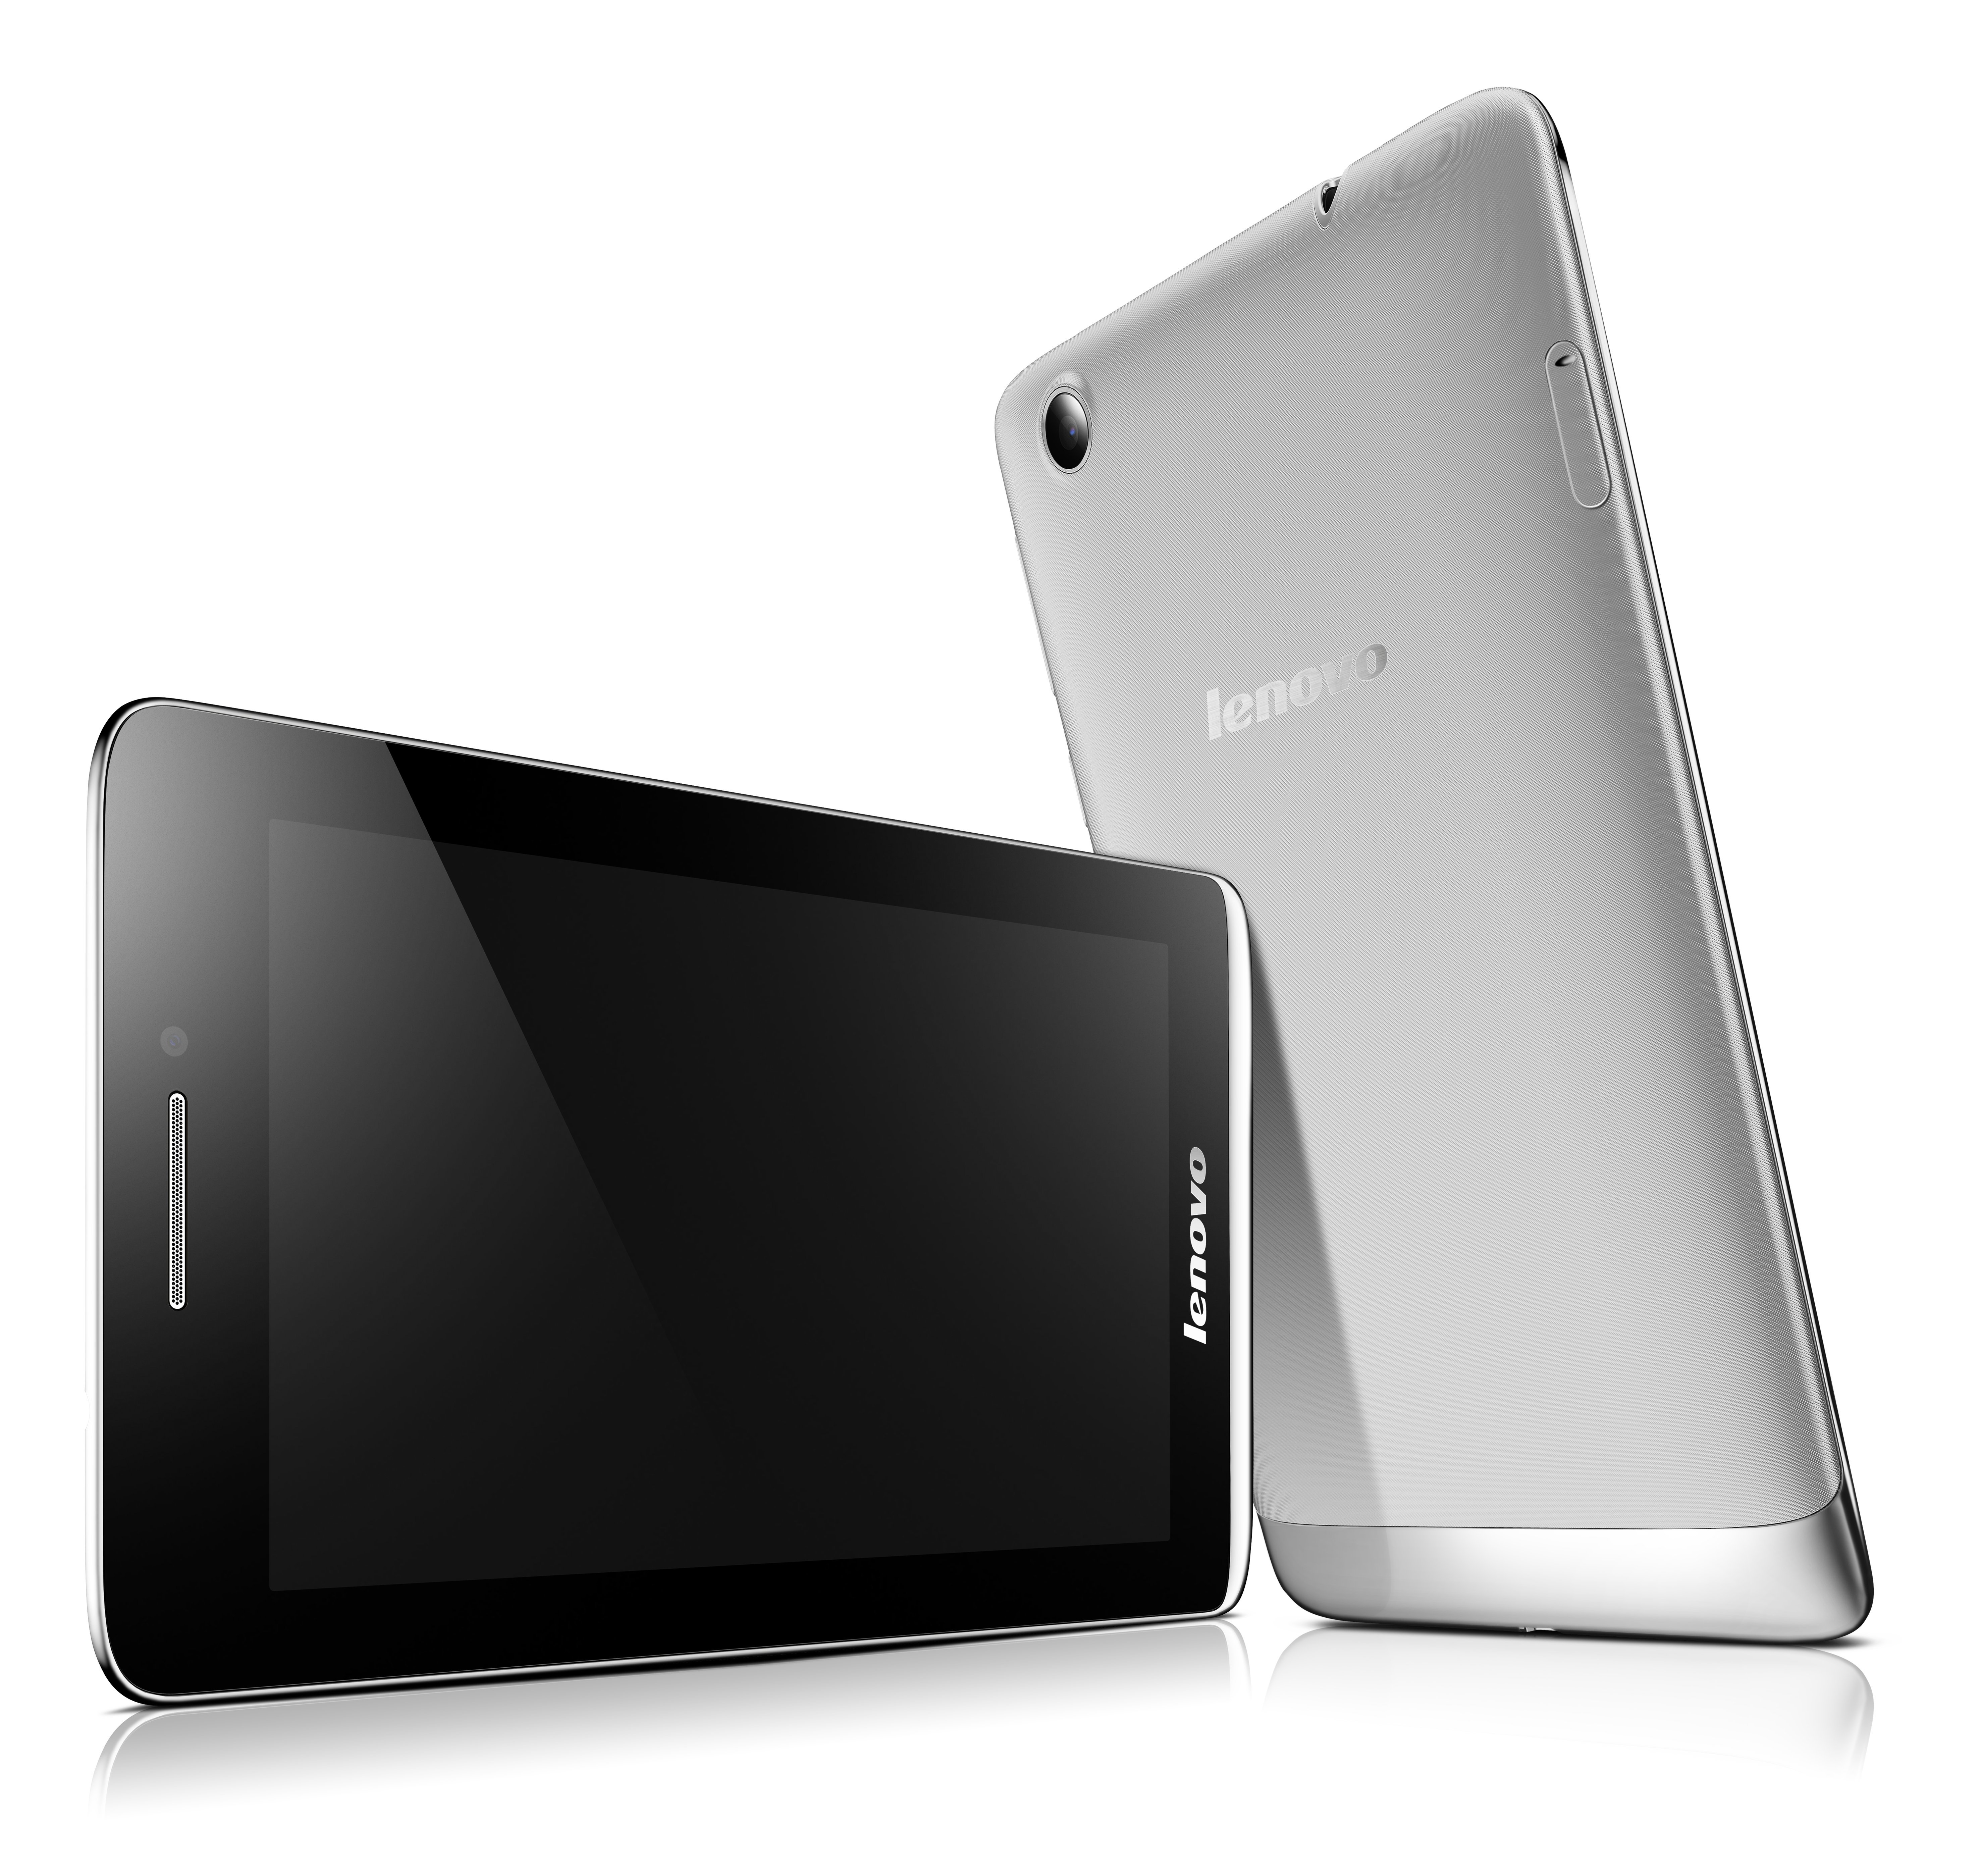 Androidguys Android News And Opinion Page 934 Samsung Galaxy Infinite 4 Inch Display 41 Jellybean Dual Core 12 Ghz Processor Offered With An Optional 3g Hspa Connection The S5000 Is One Of Slimmest Lightest Tablets A 79mm Form Factor 246 Grams